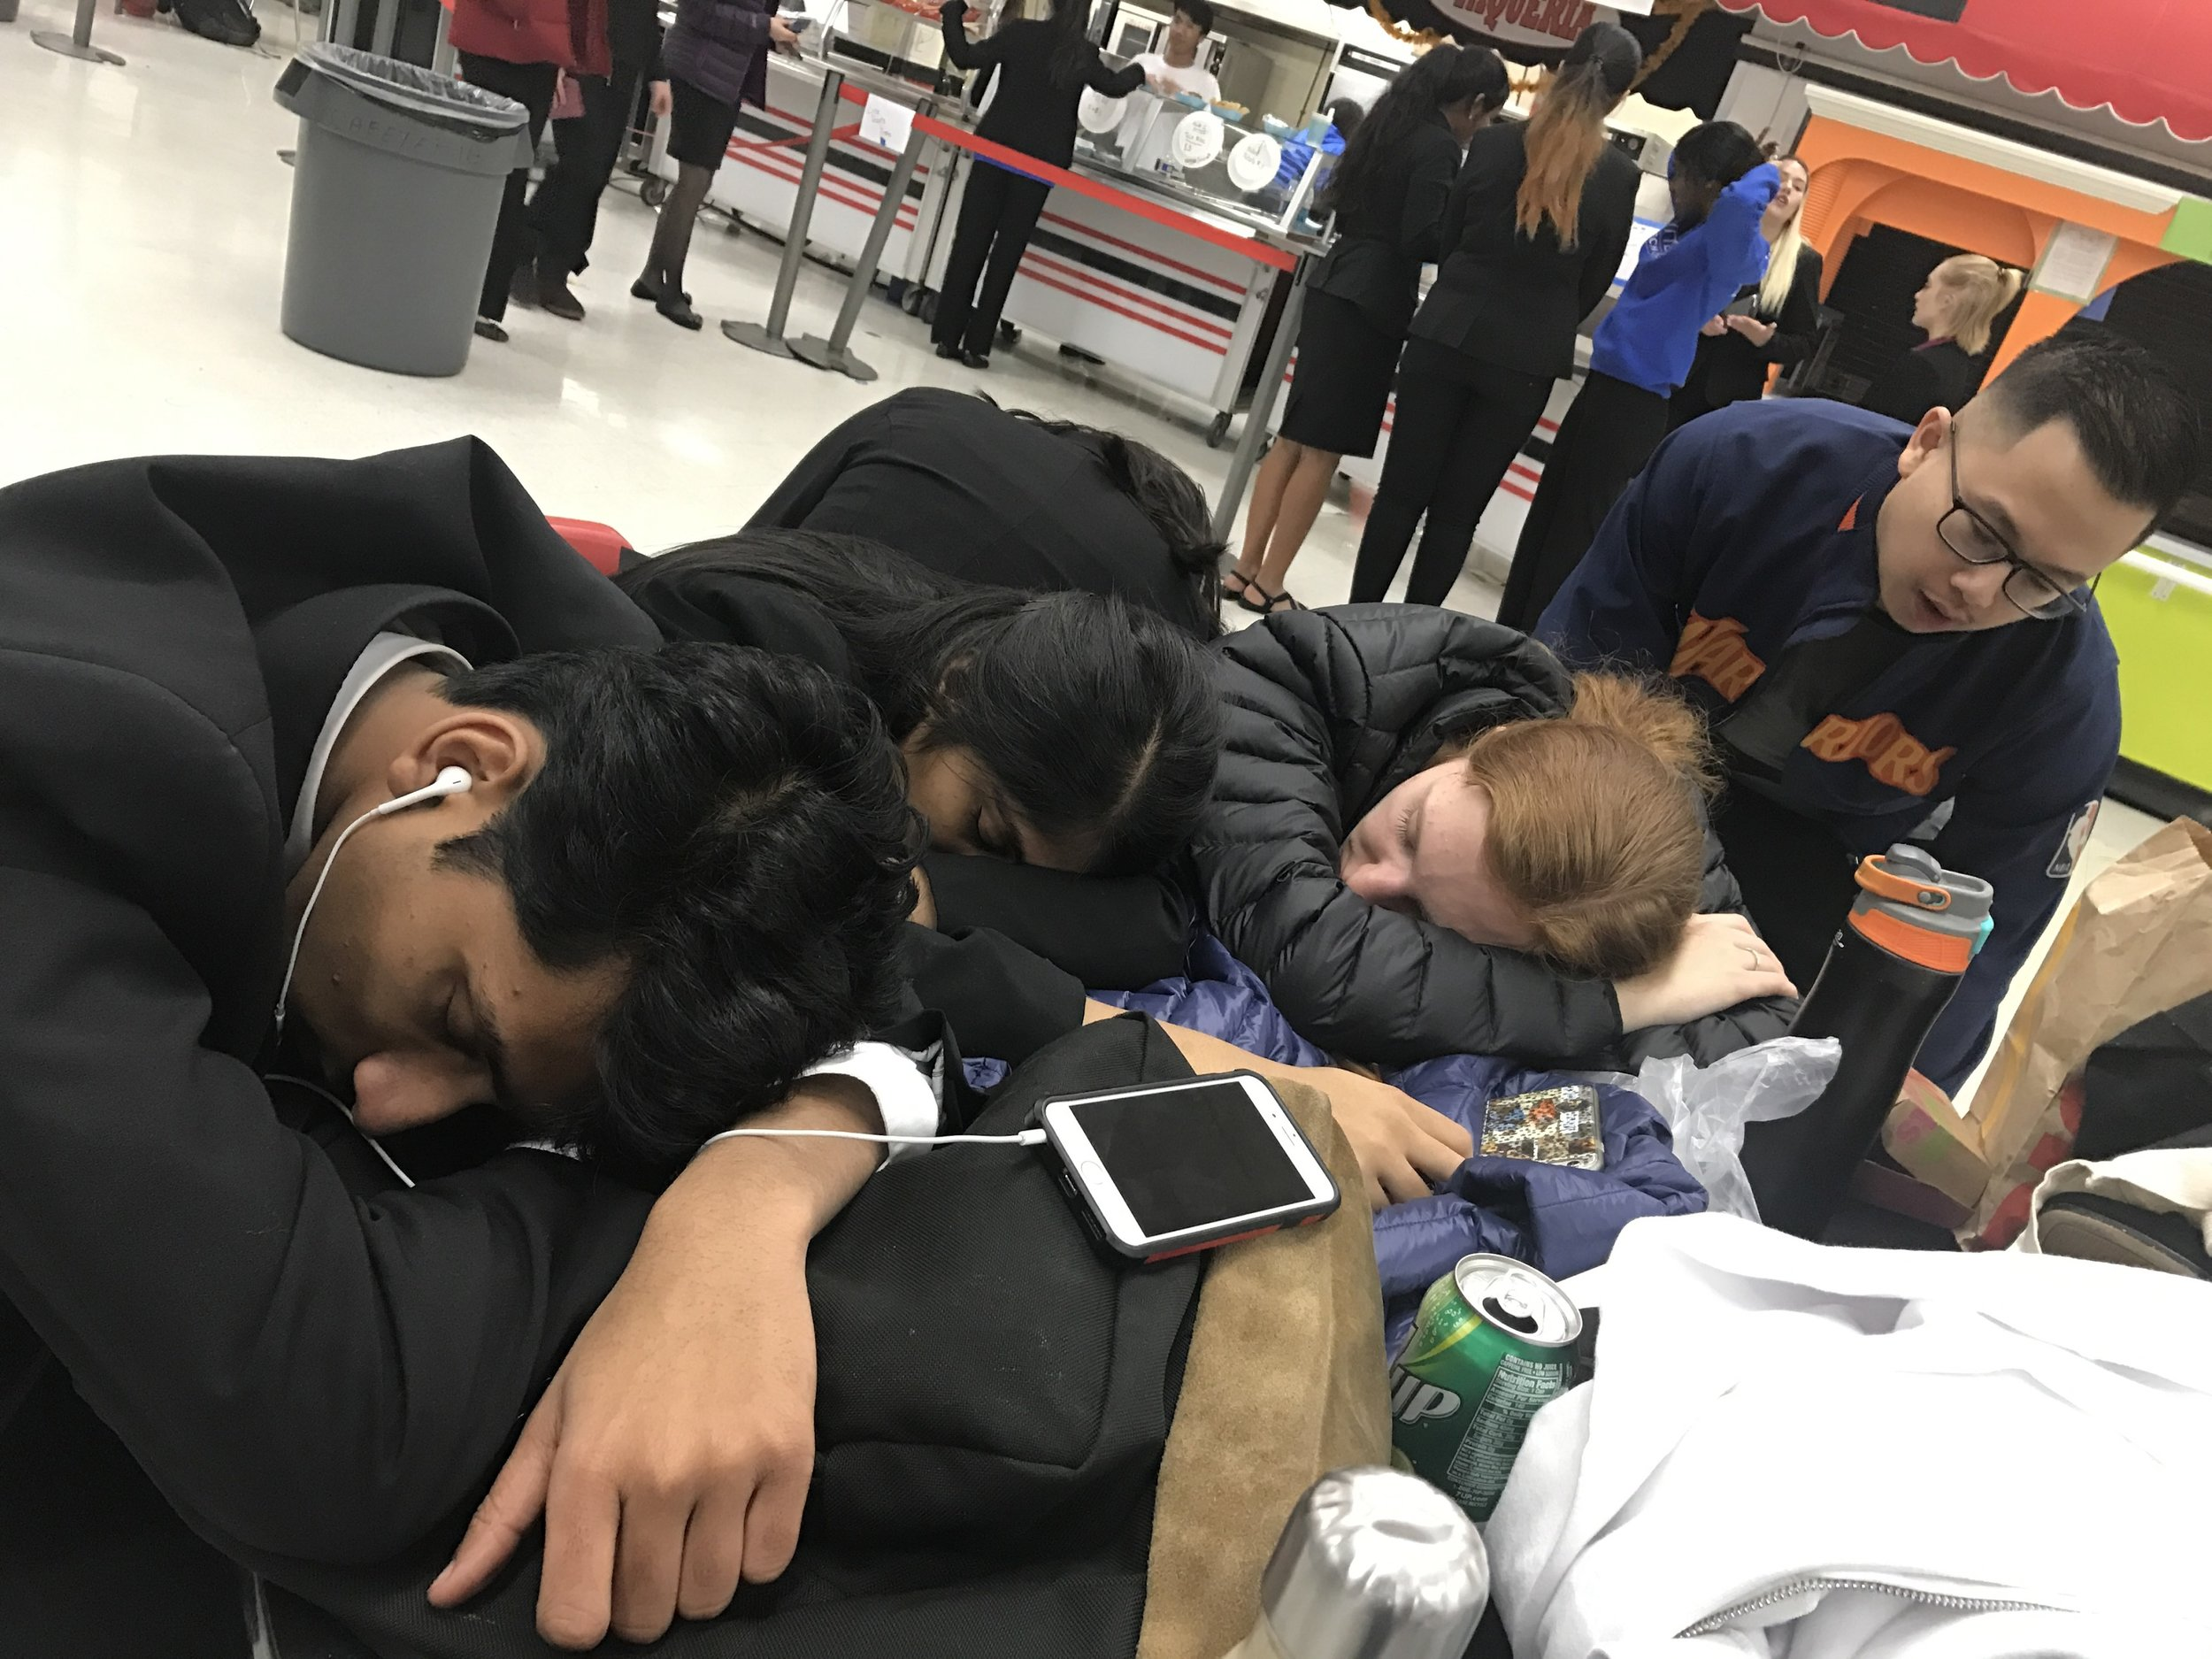 Mr. Cruz joining 3/Super 6 for a quick nap